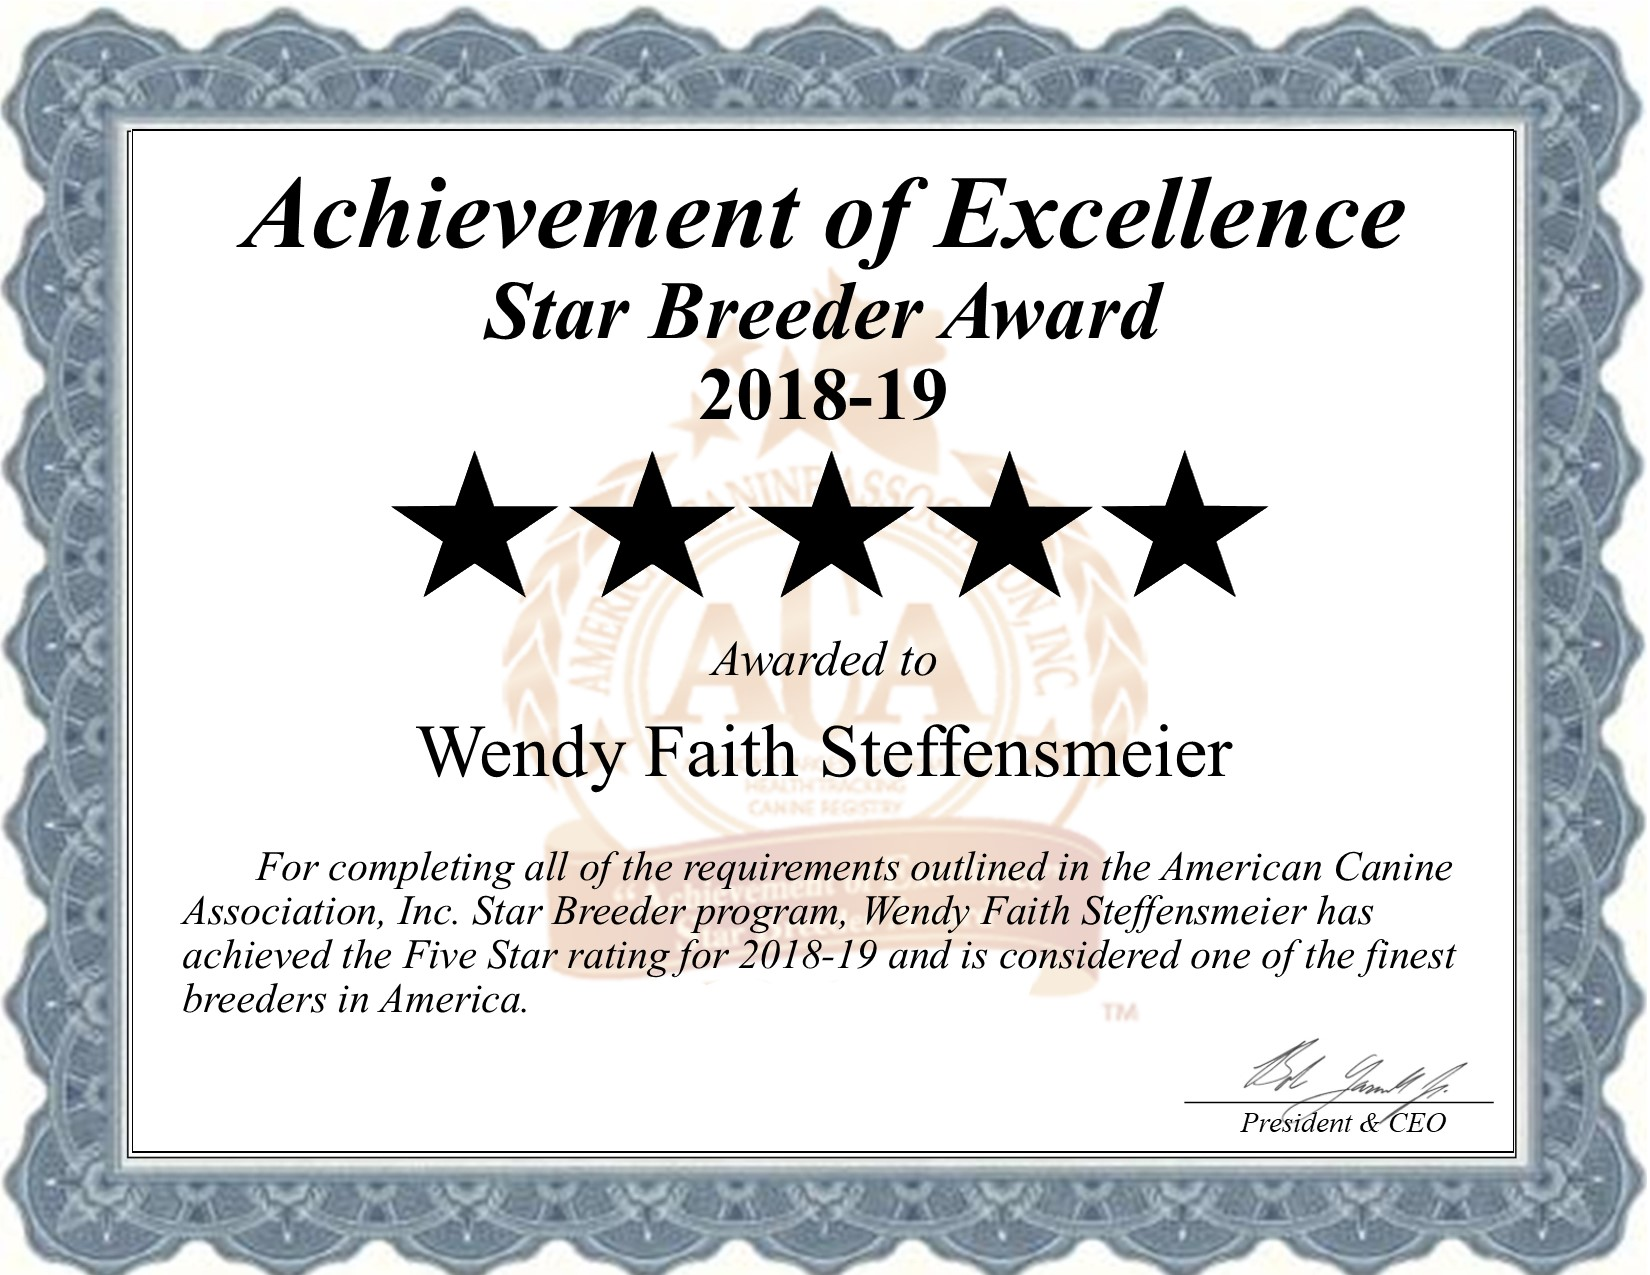 wendy, faith, steffensmeier, certificate, dog, breeder, wendy-steffensmeier, dog-breeder, springfield, mo, missouri, usda, puppy, puppies, ACA, ICA, french, bulldog, bull, dogs, star